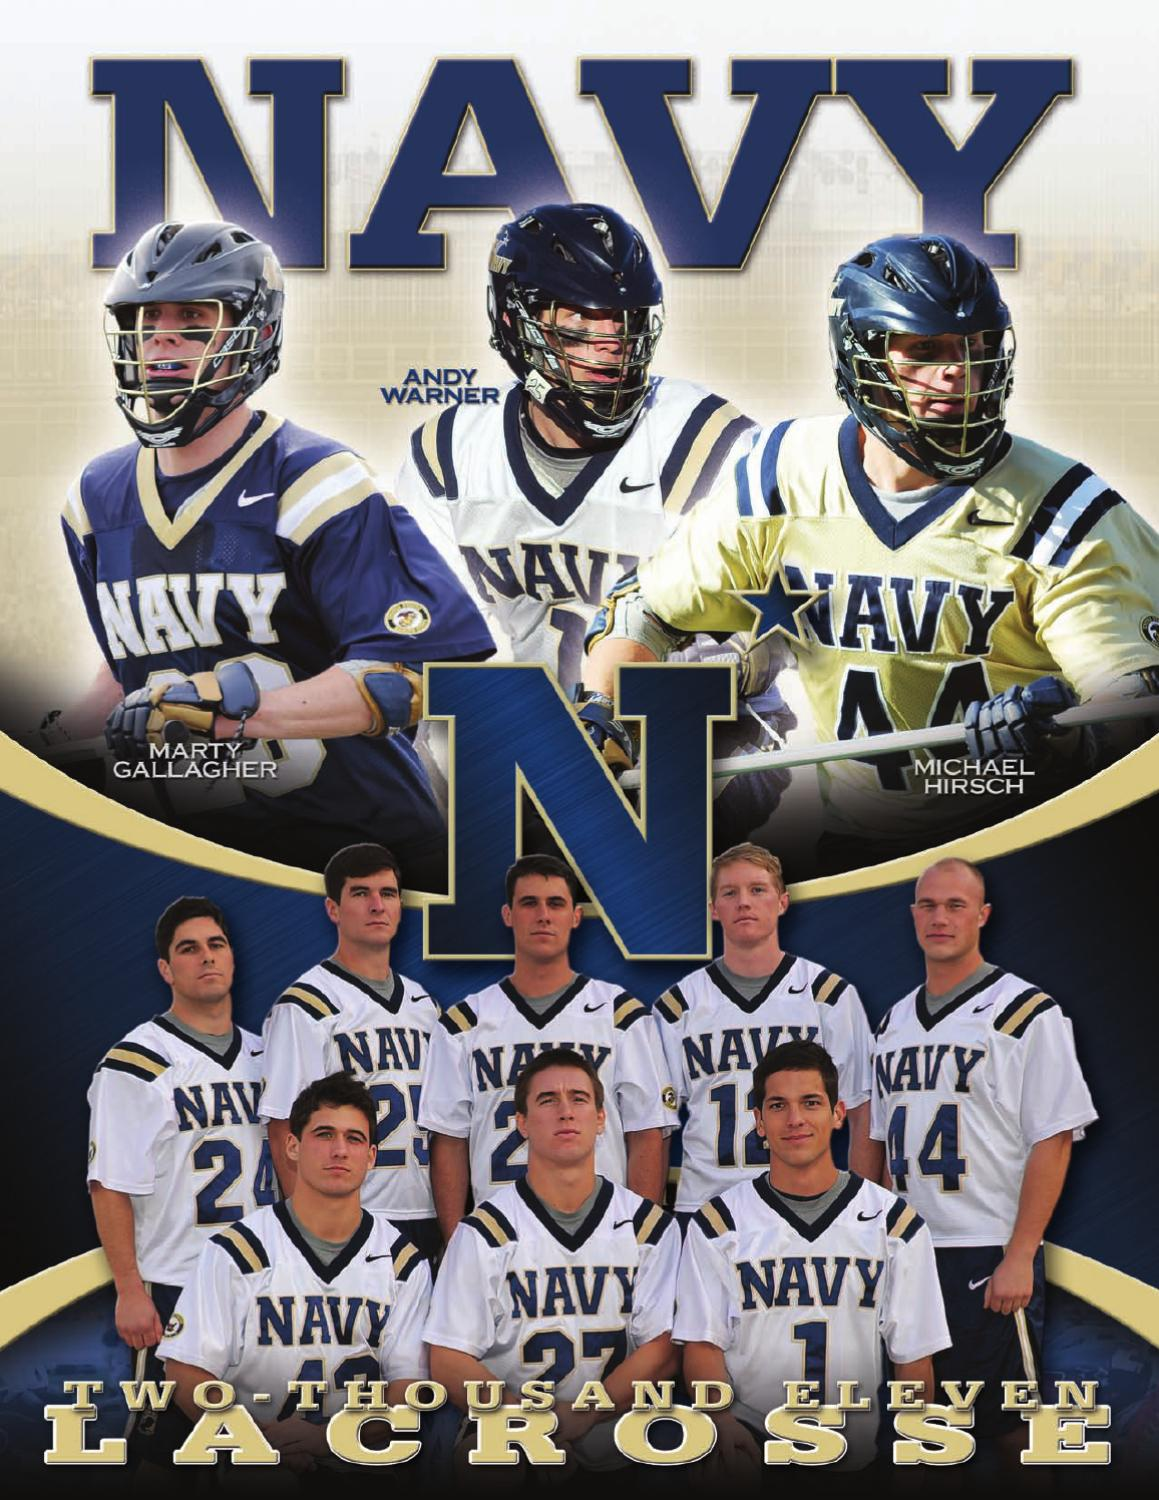 2011 M Lacrosse Guide by Naval Academy Athletic Association - issuu 9e73296bb